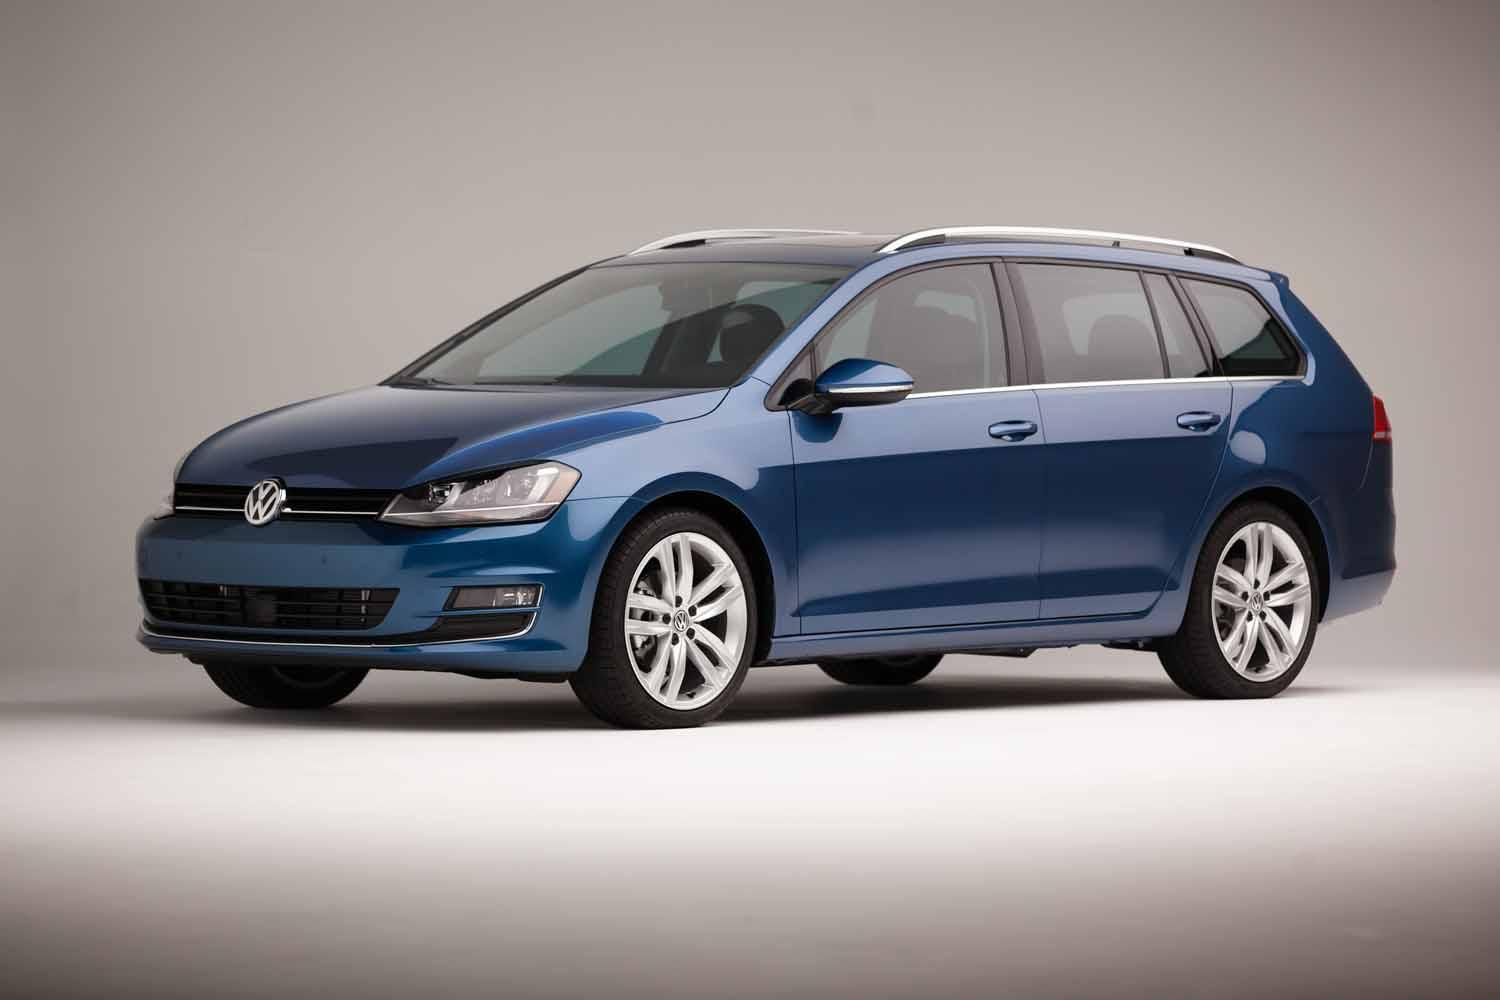 Don T Call It A Jetta Volkswagen Prices 2015 Golf Sportwagen